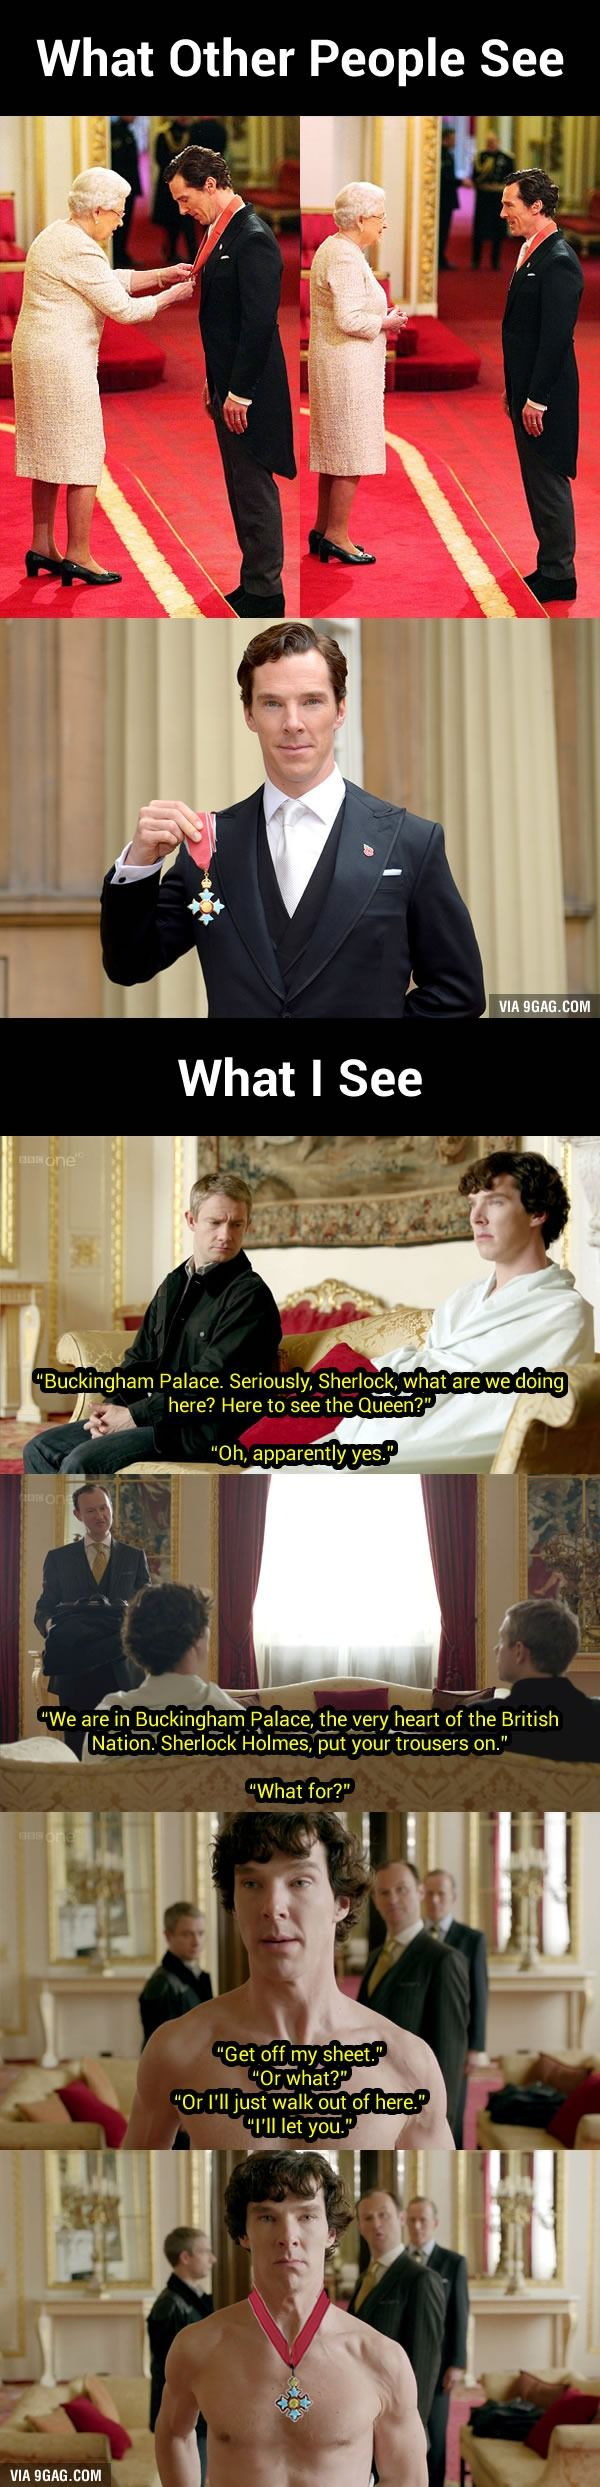 Sherlock Meets The Queen: Benedict Cumberbatch Receiving CBE Looks Oddly Familiar… - 9GAG